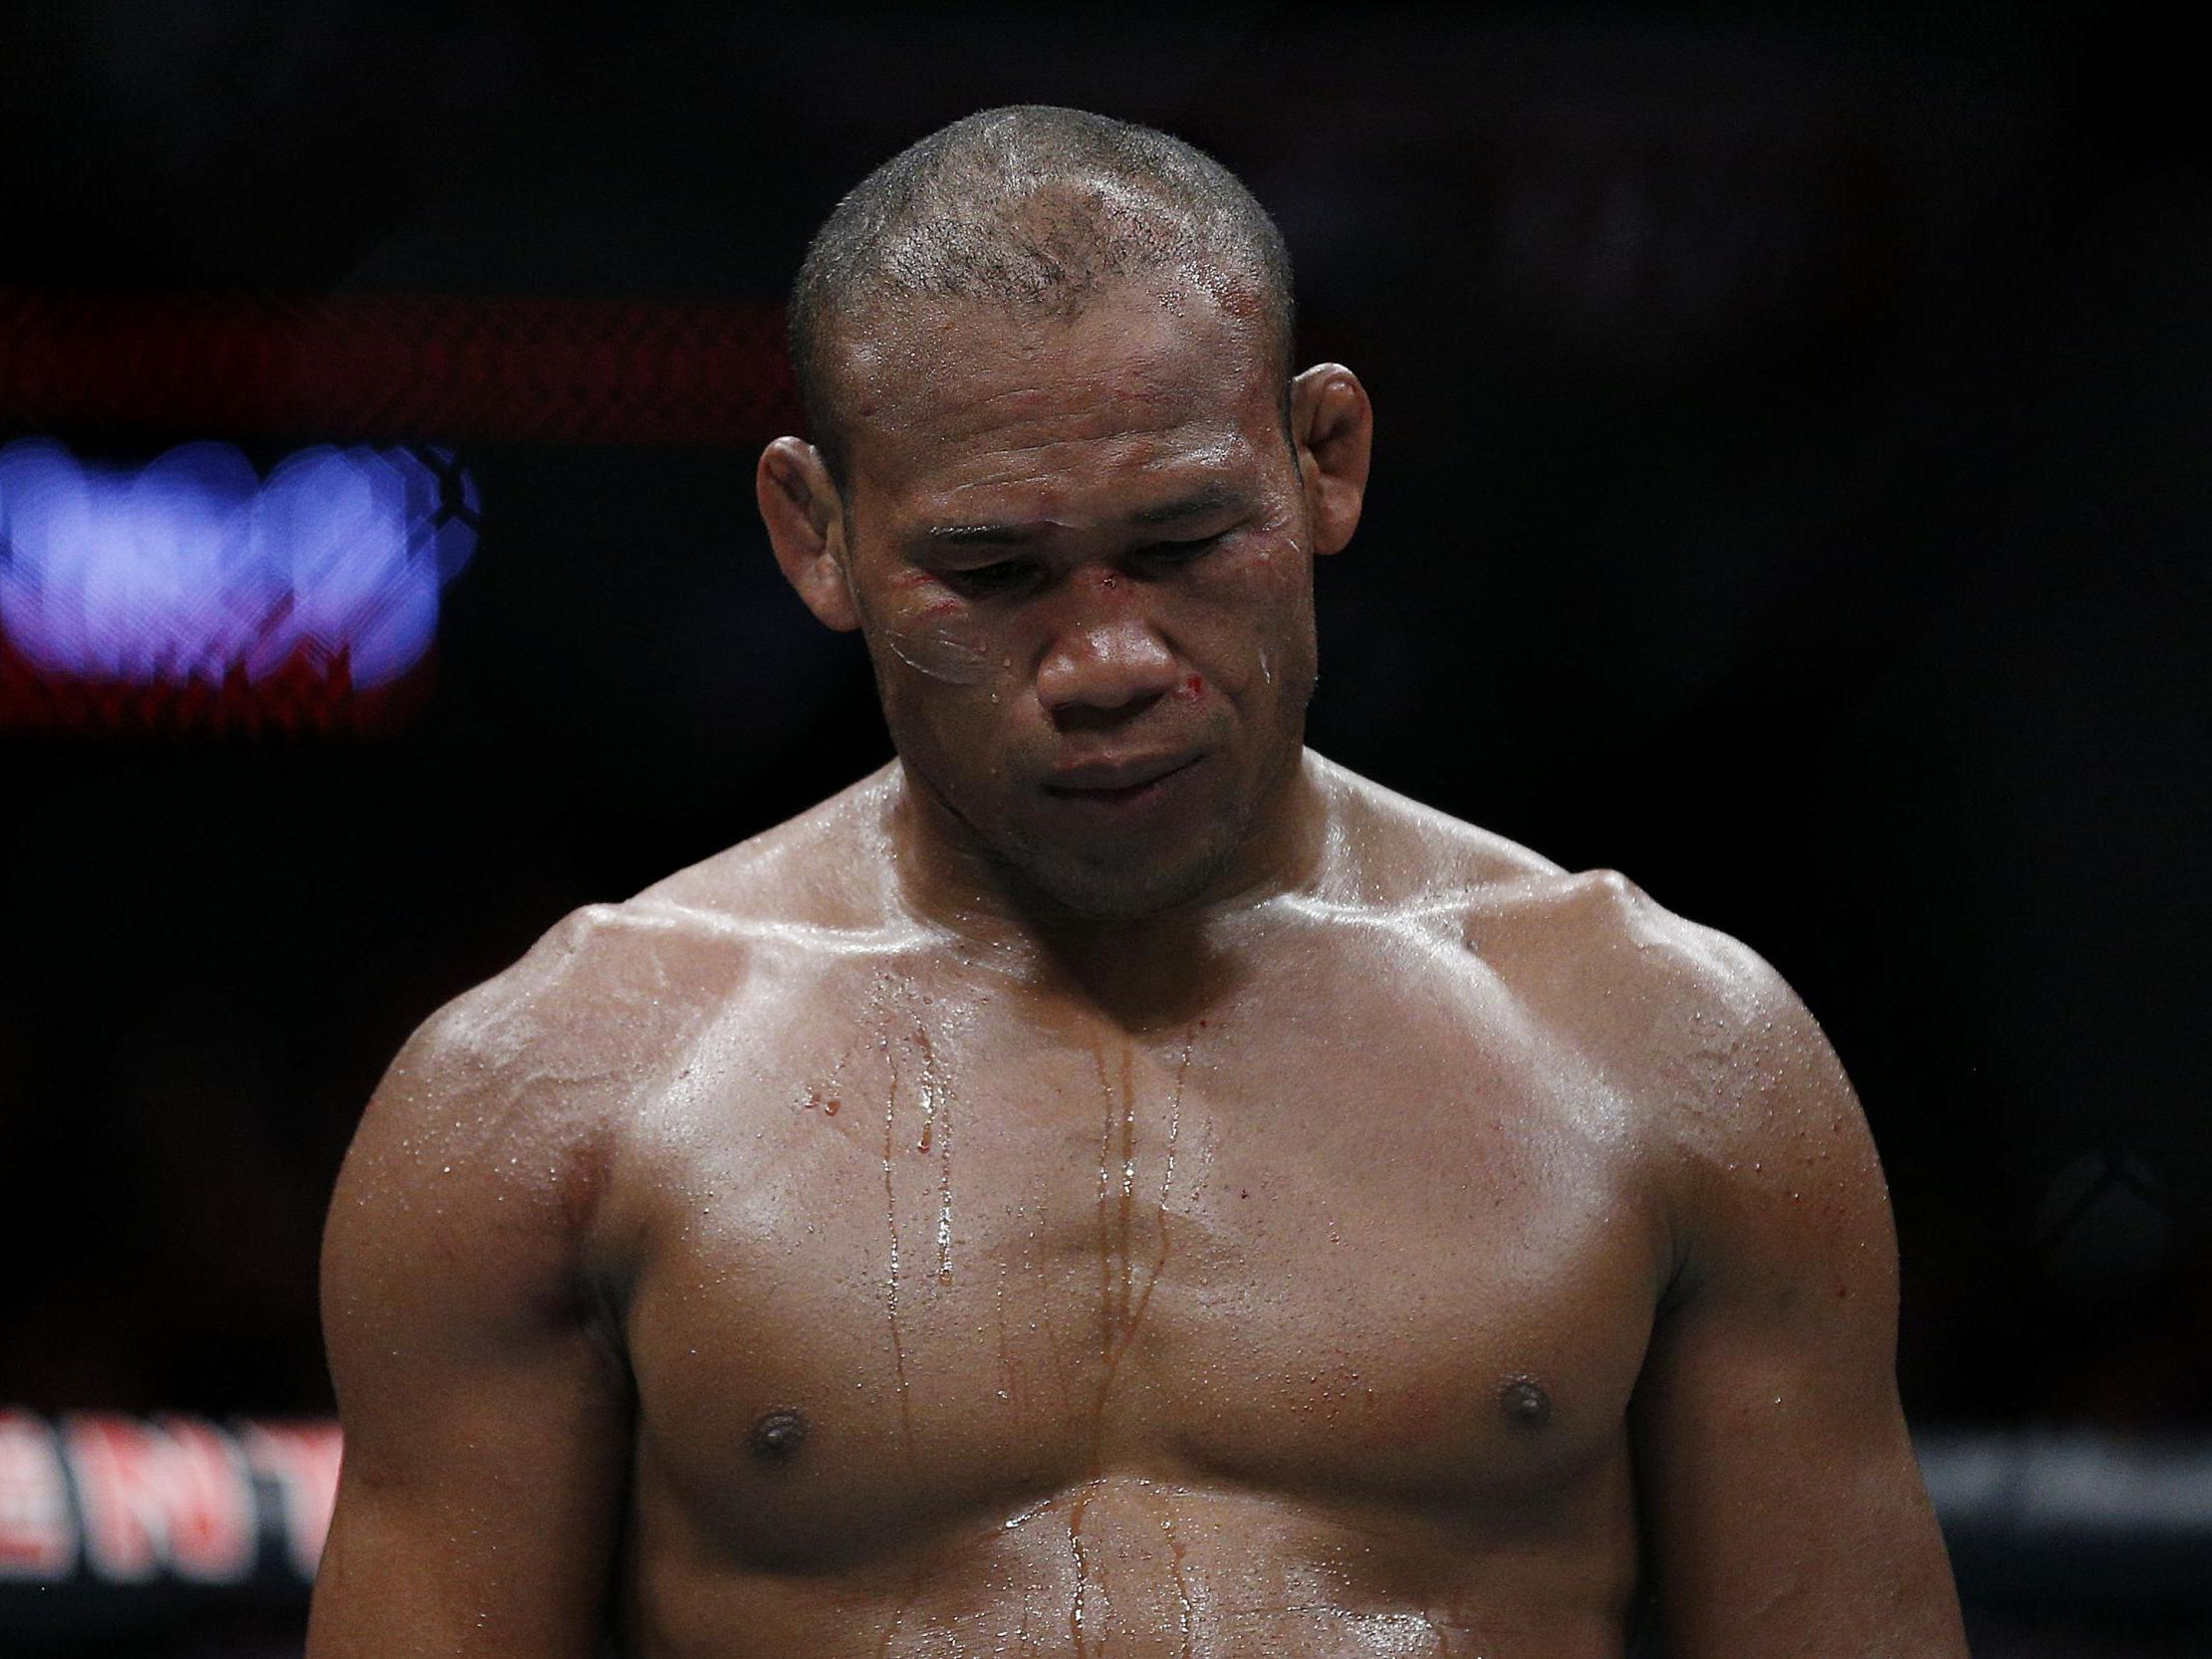 Ronaldo Souza: Fighter withdrawn from UFC 249 hours before event after testing positive for coronavirus